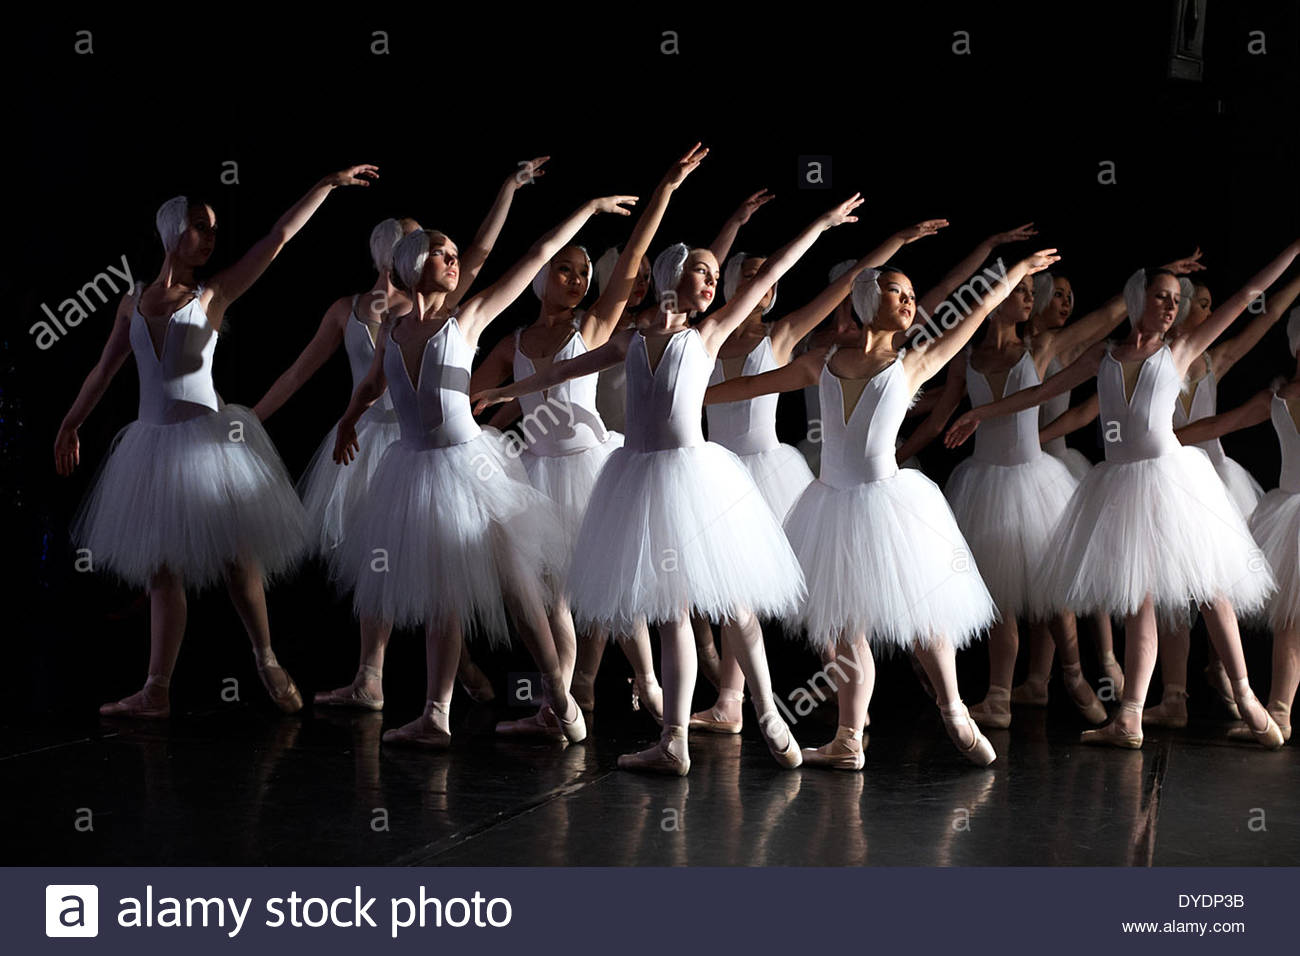 Group Of Ballet Dancers 99